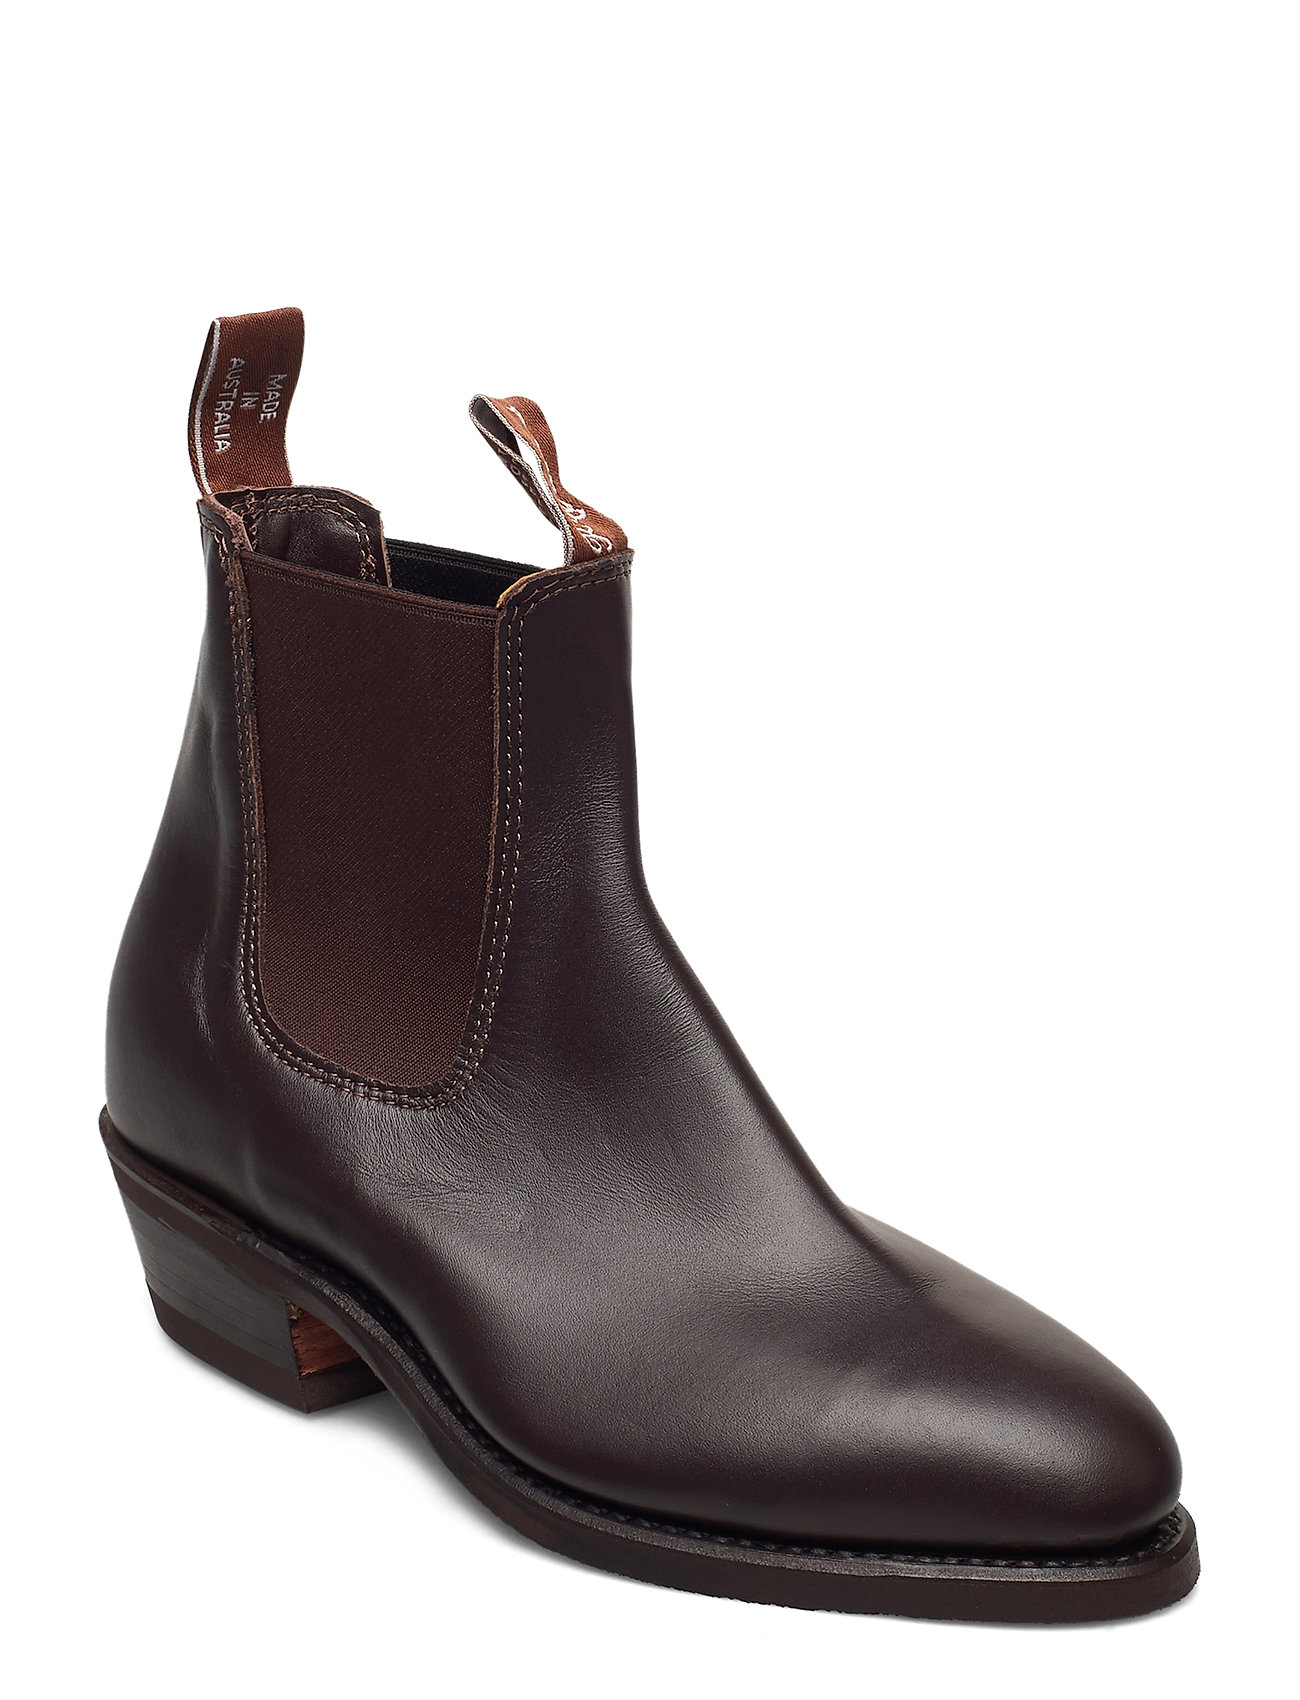 Image of The Yearling G Shoes Boots Ankle Boots Ankle Boot - Heel Brun R.M. Williams (3452761575)